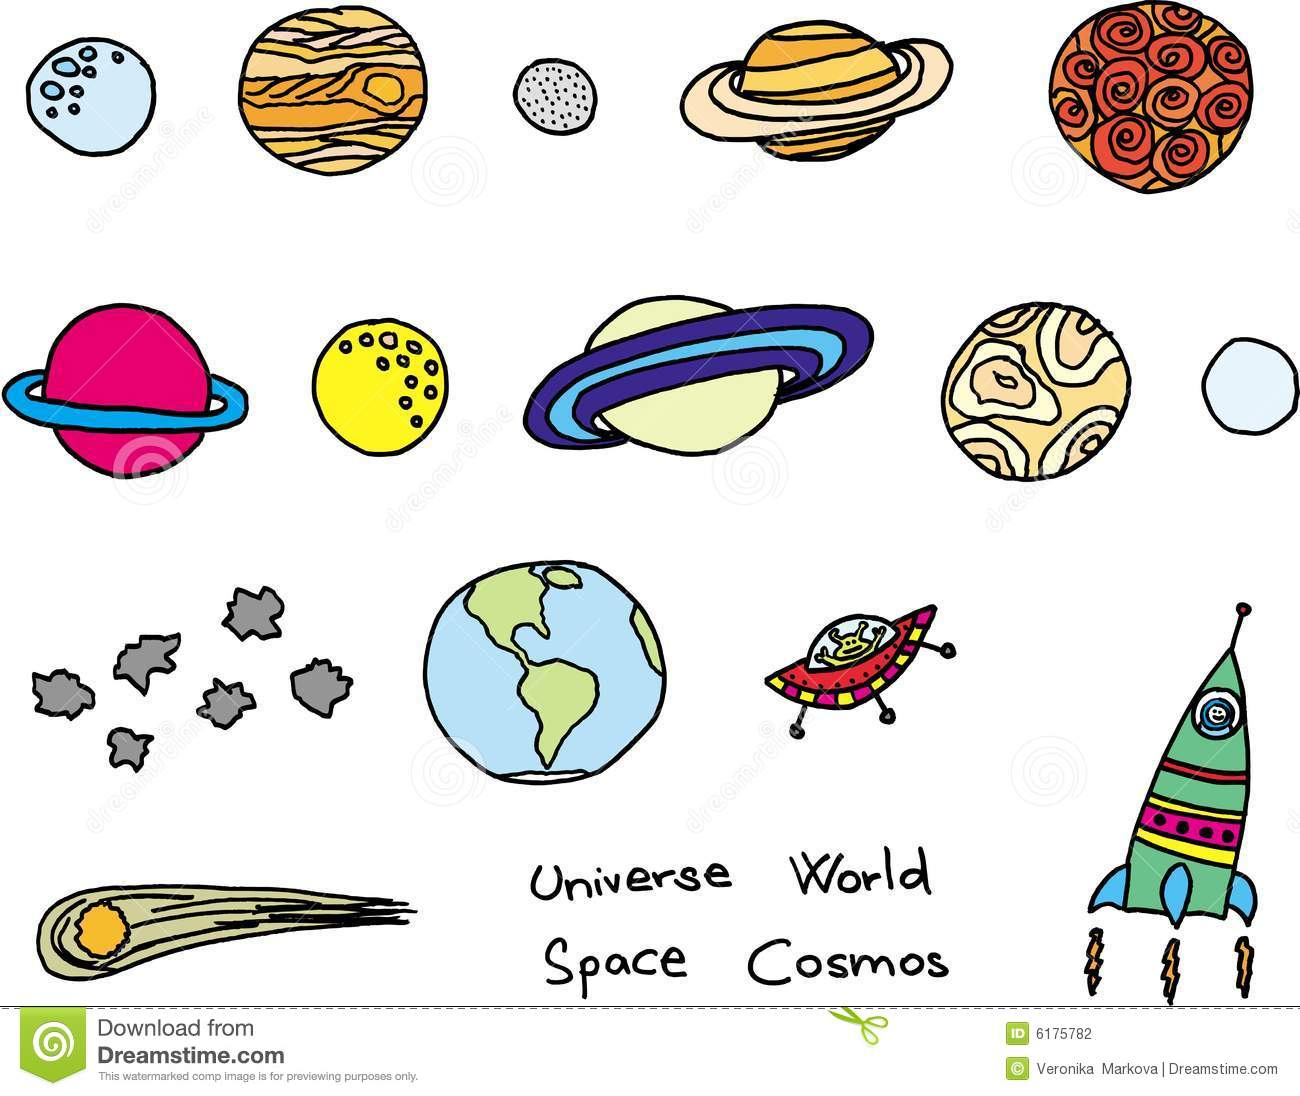 Universe clipart #5, Download drawings